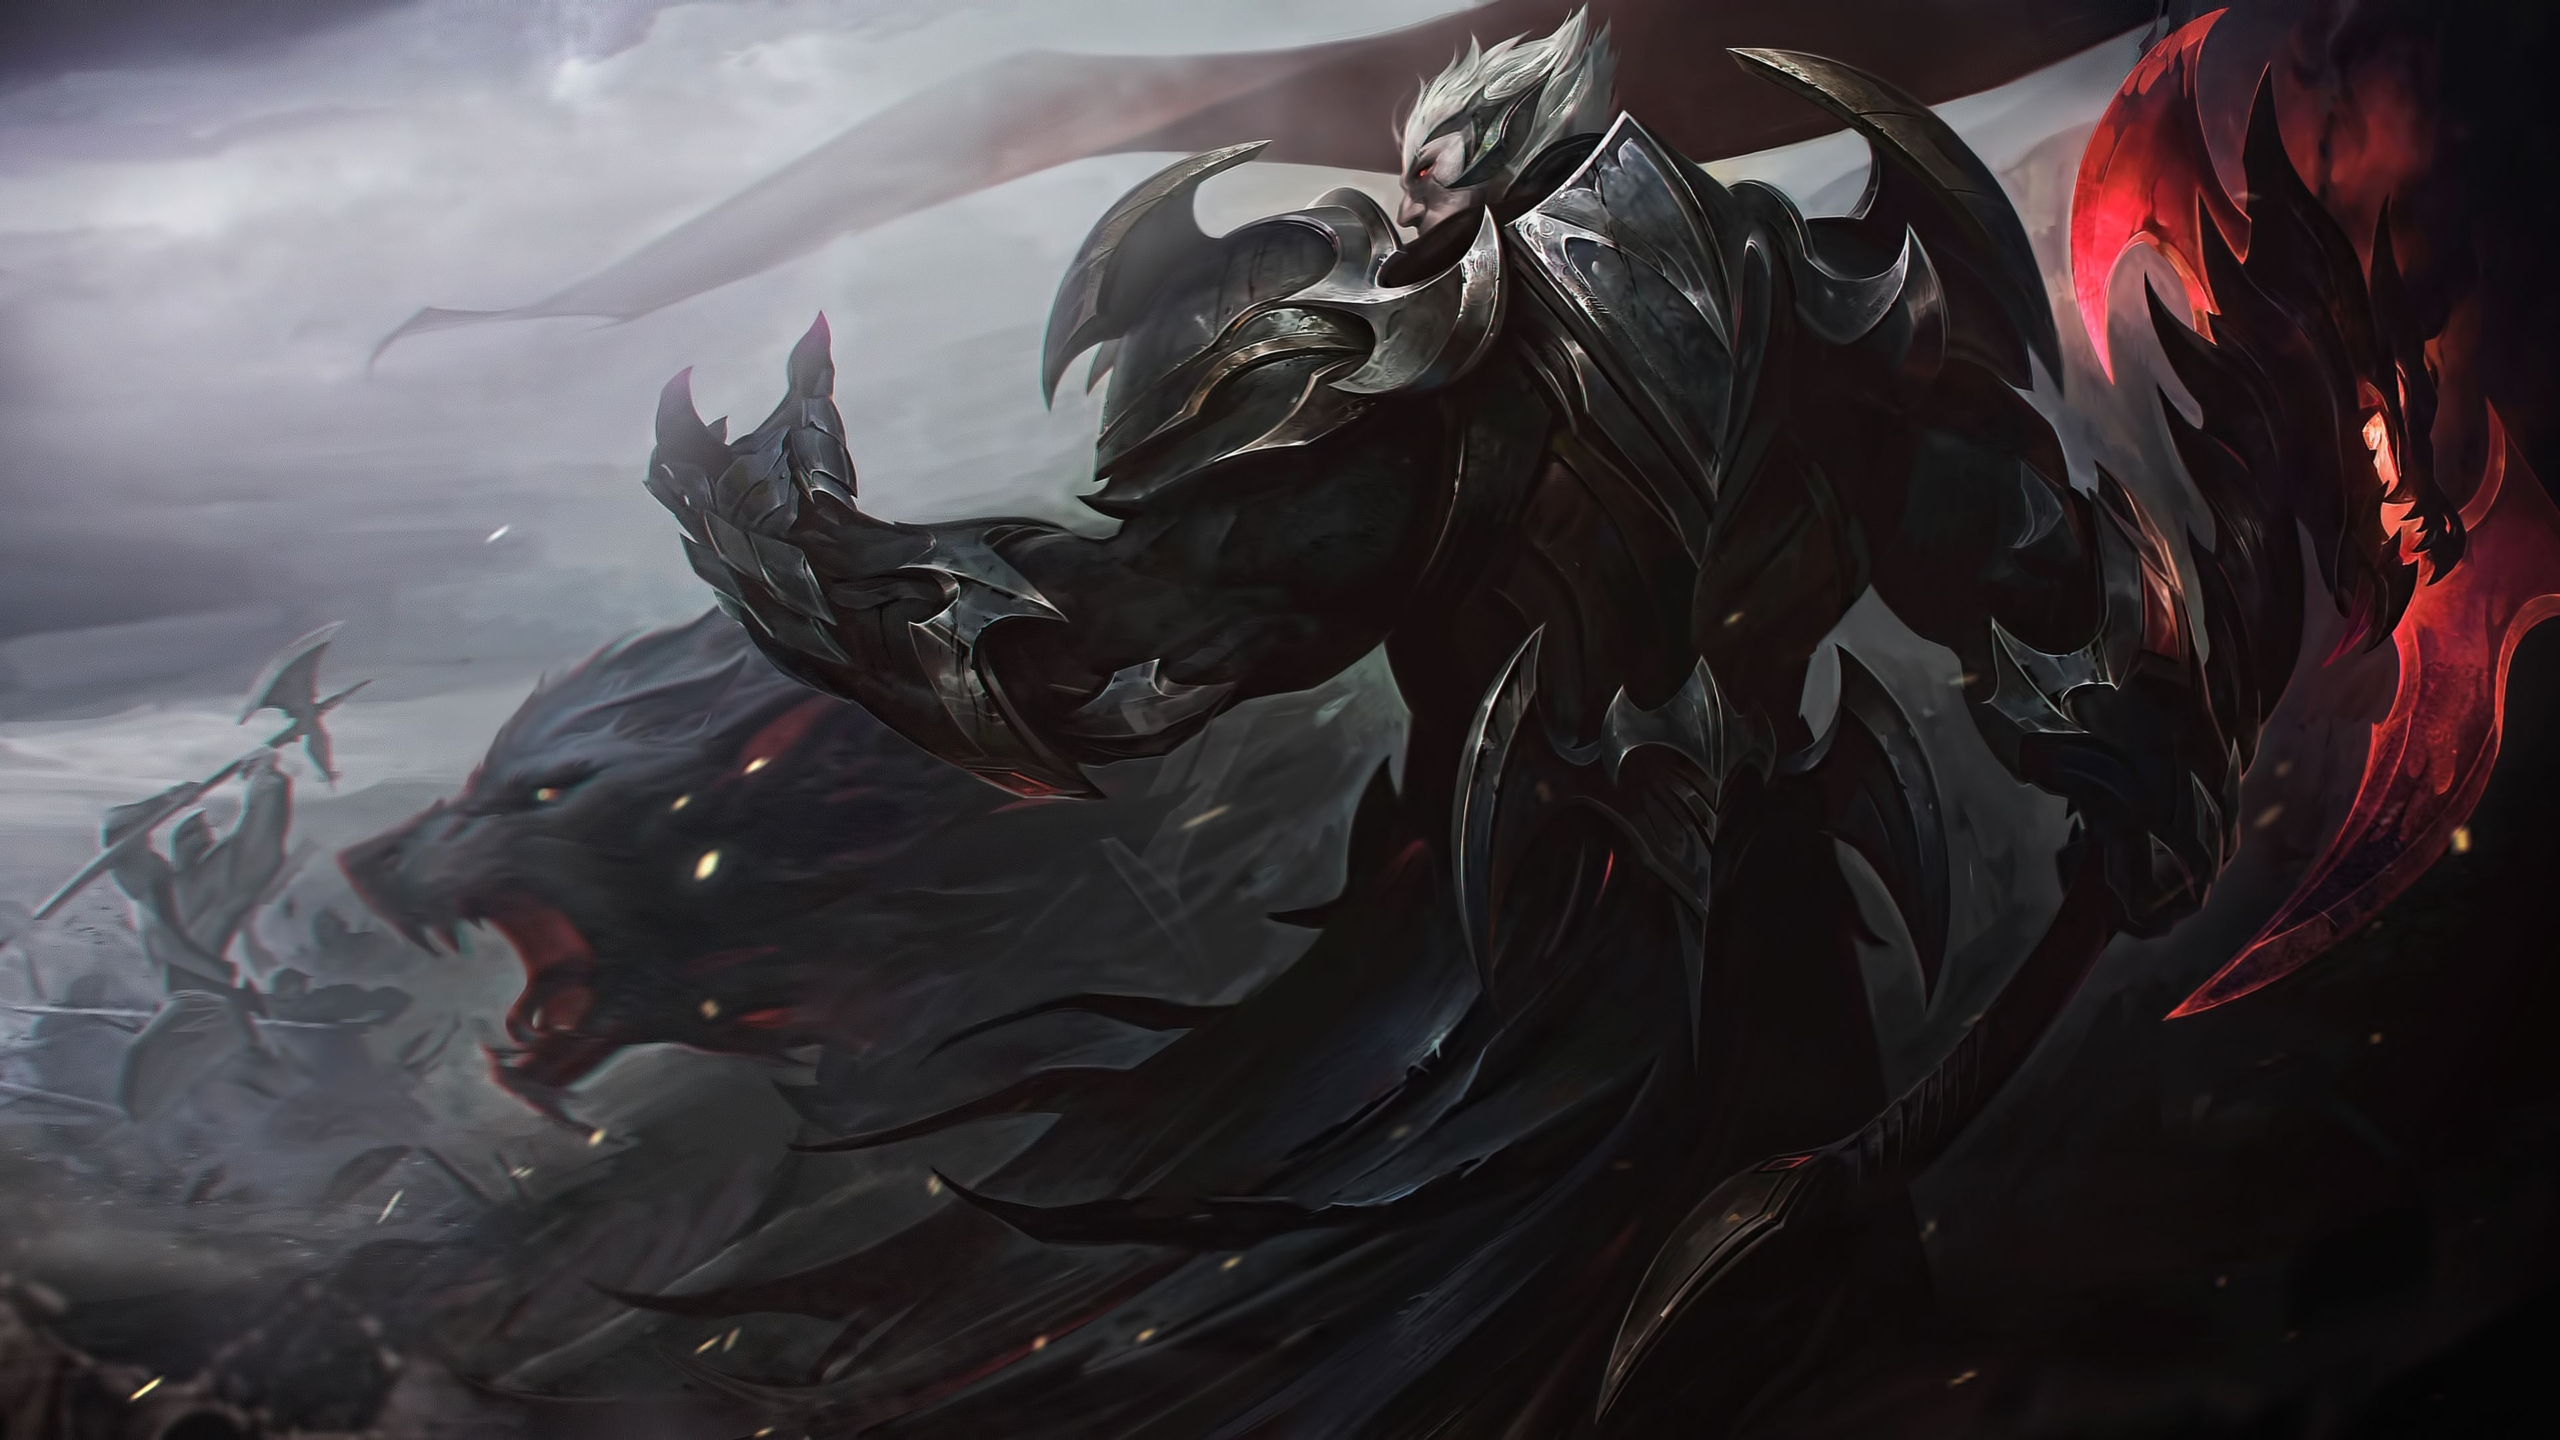 League Of Legends Wallpaper – Choosing The Right One